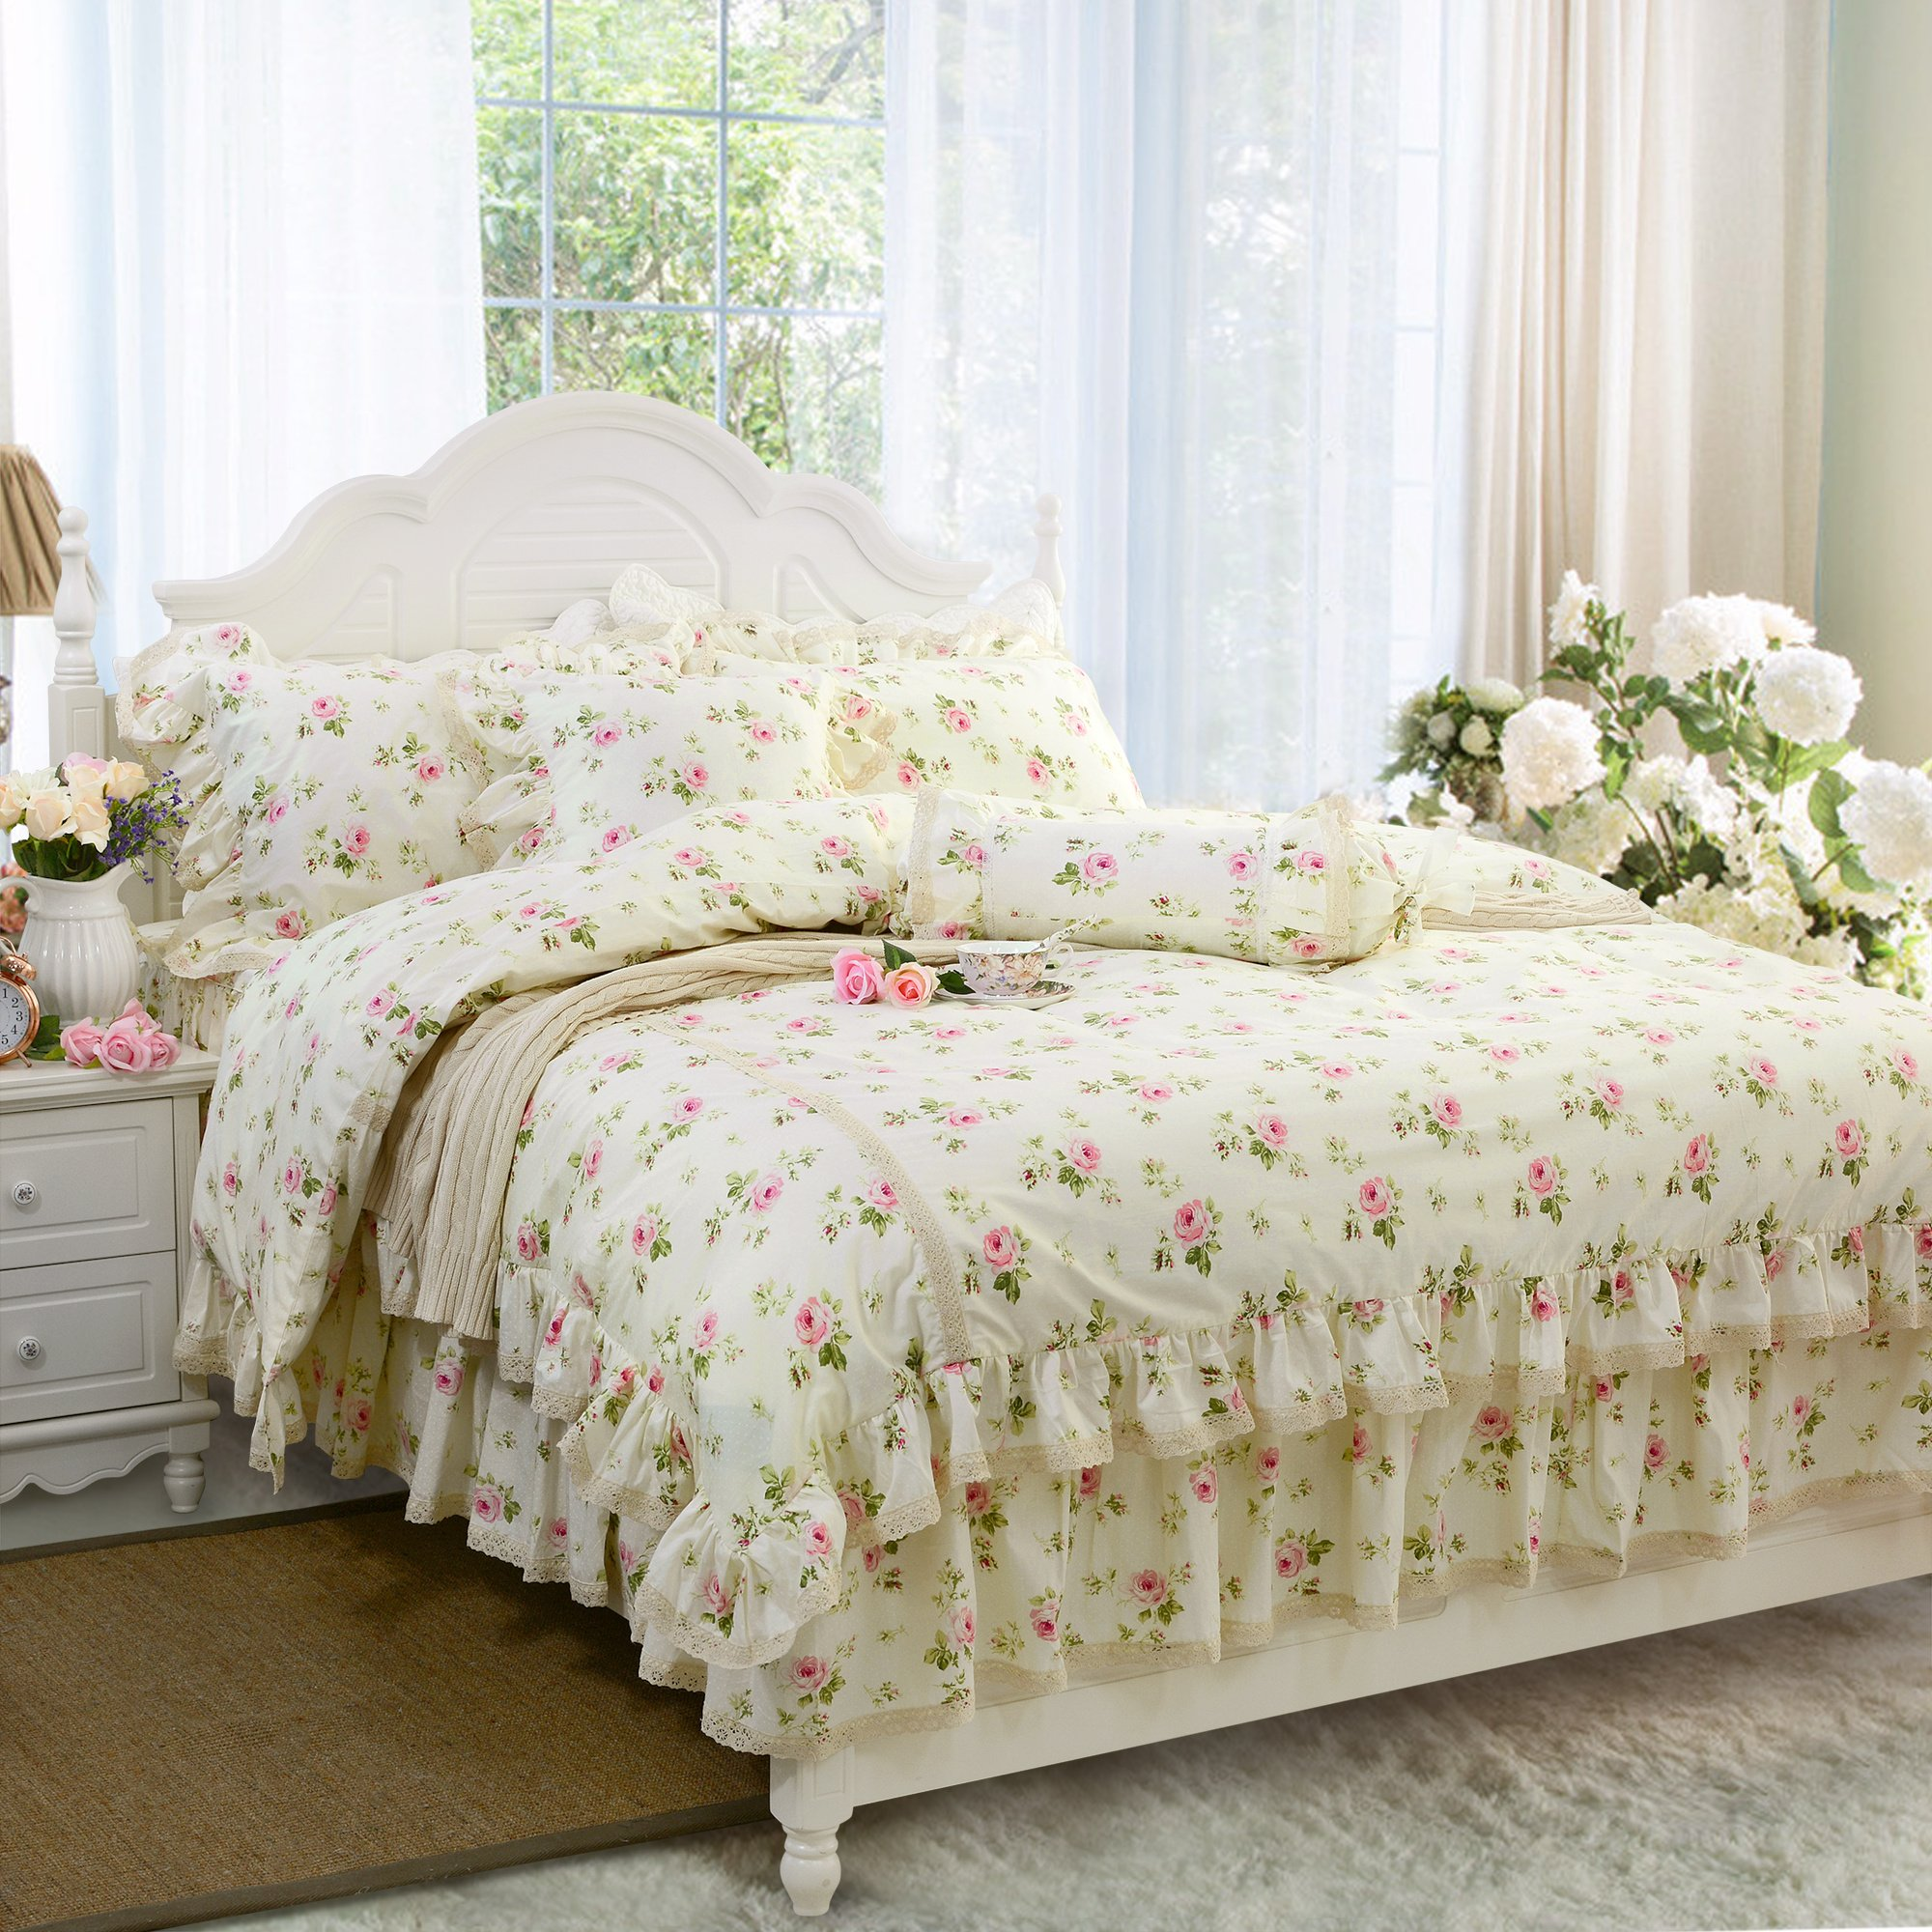 FADFAY Rosette Floral Print Duvet Cover Set Princess Lace Ruffle Bedding Set For Girls 4 Pieces California King Size